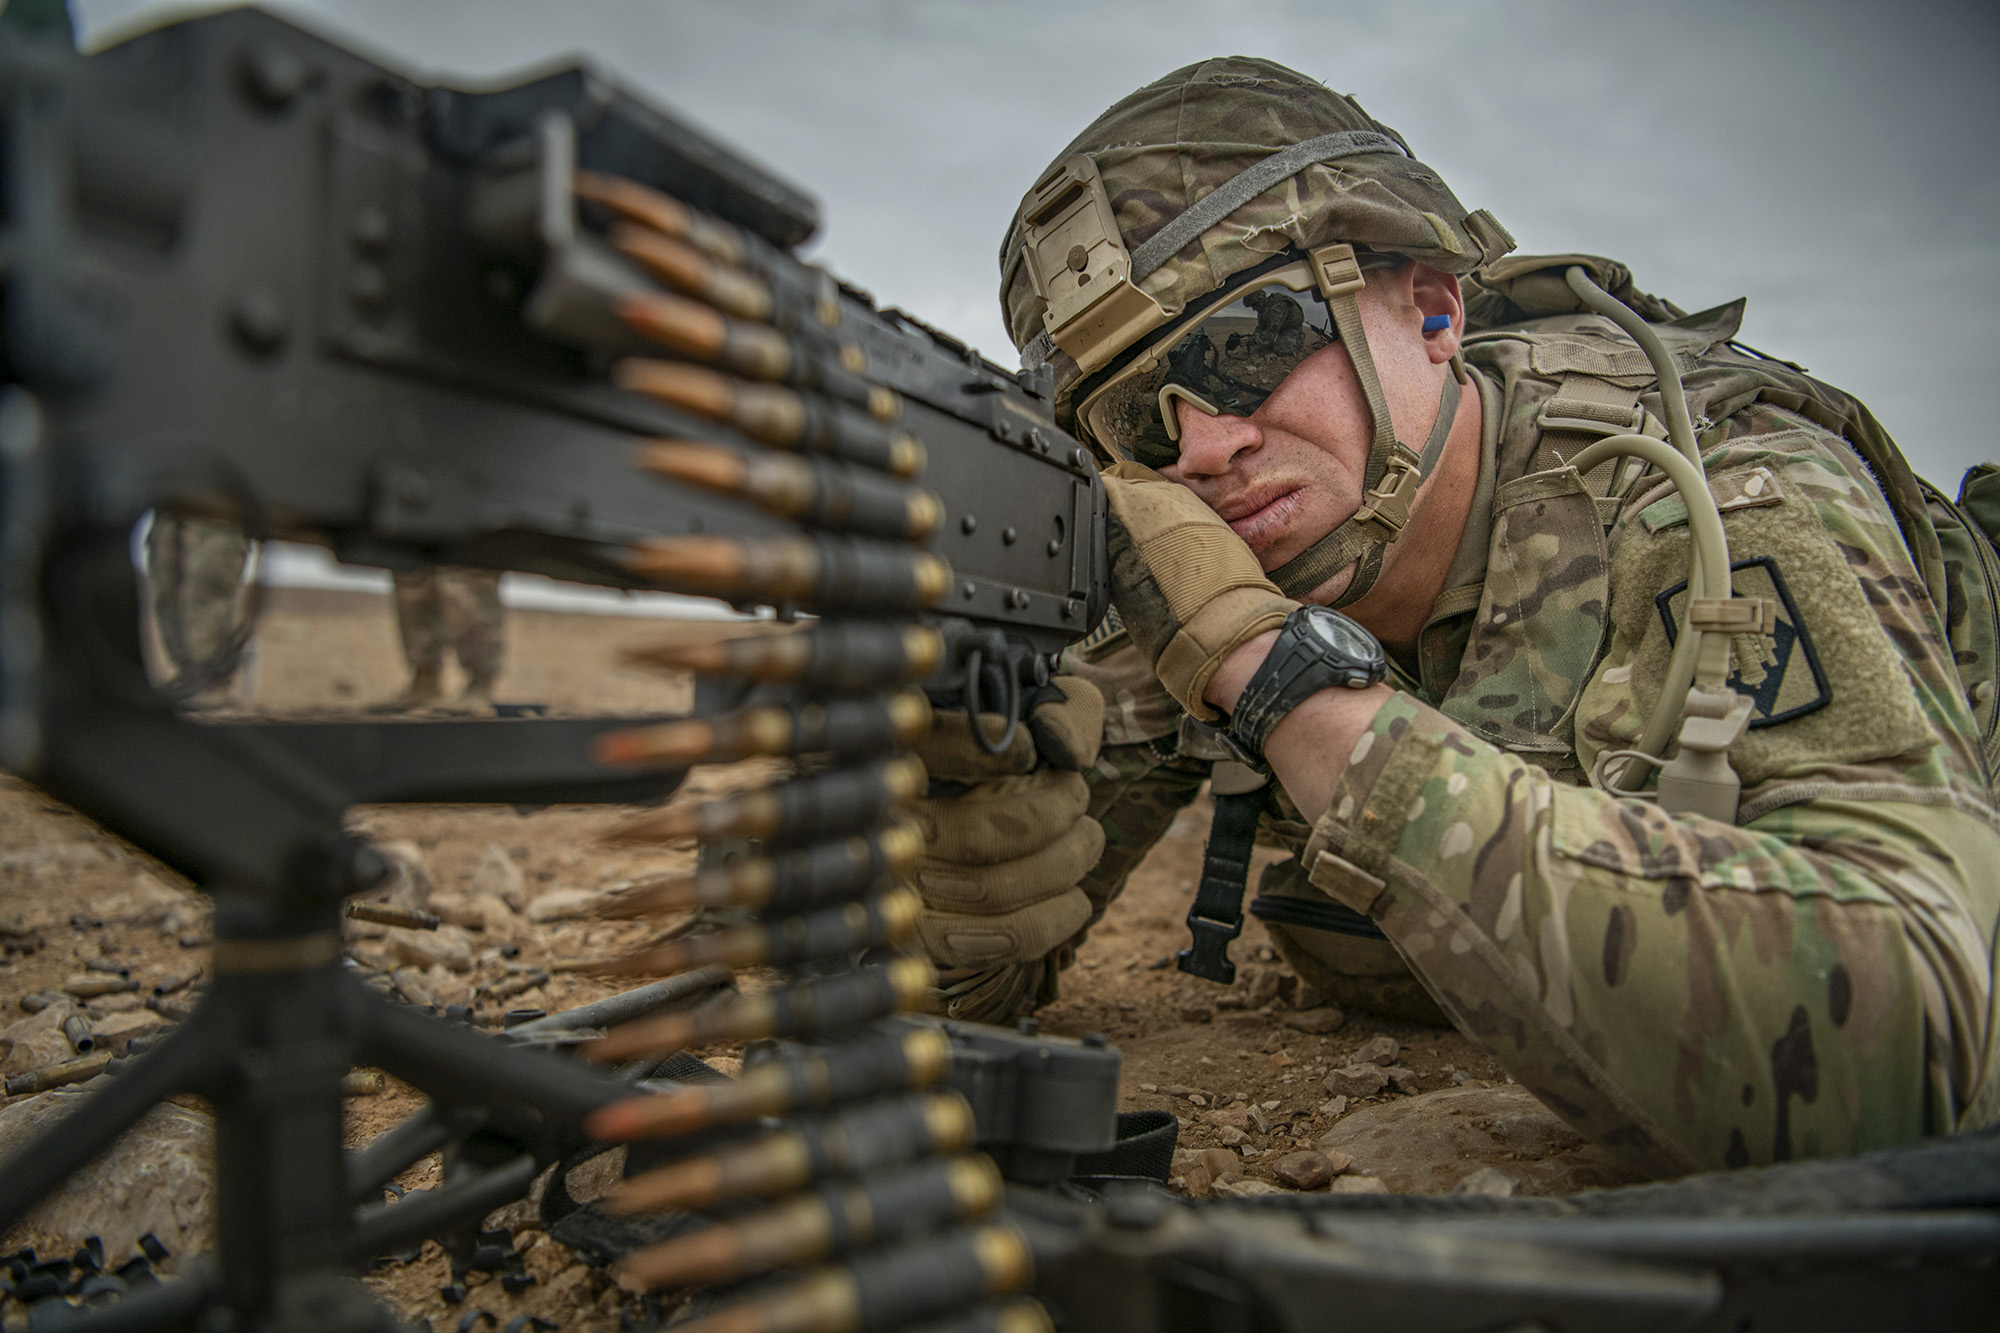 Staff Sgt. Dakota Montgomery fires an M240 machine gun during a weapon familiarization range on Nov. 28, 2020, while deployed to the Middle East in support of Operation Spartan Shield and Operation Inherent Resolve. (Sgt. Dustin D. Biven/Army)